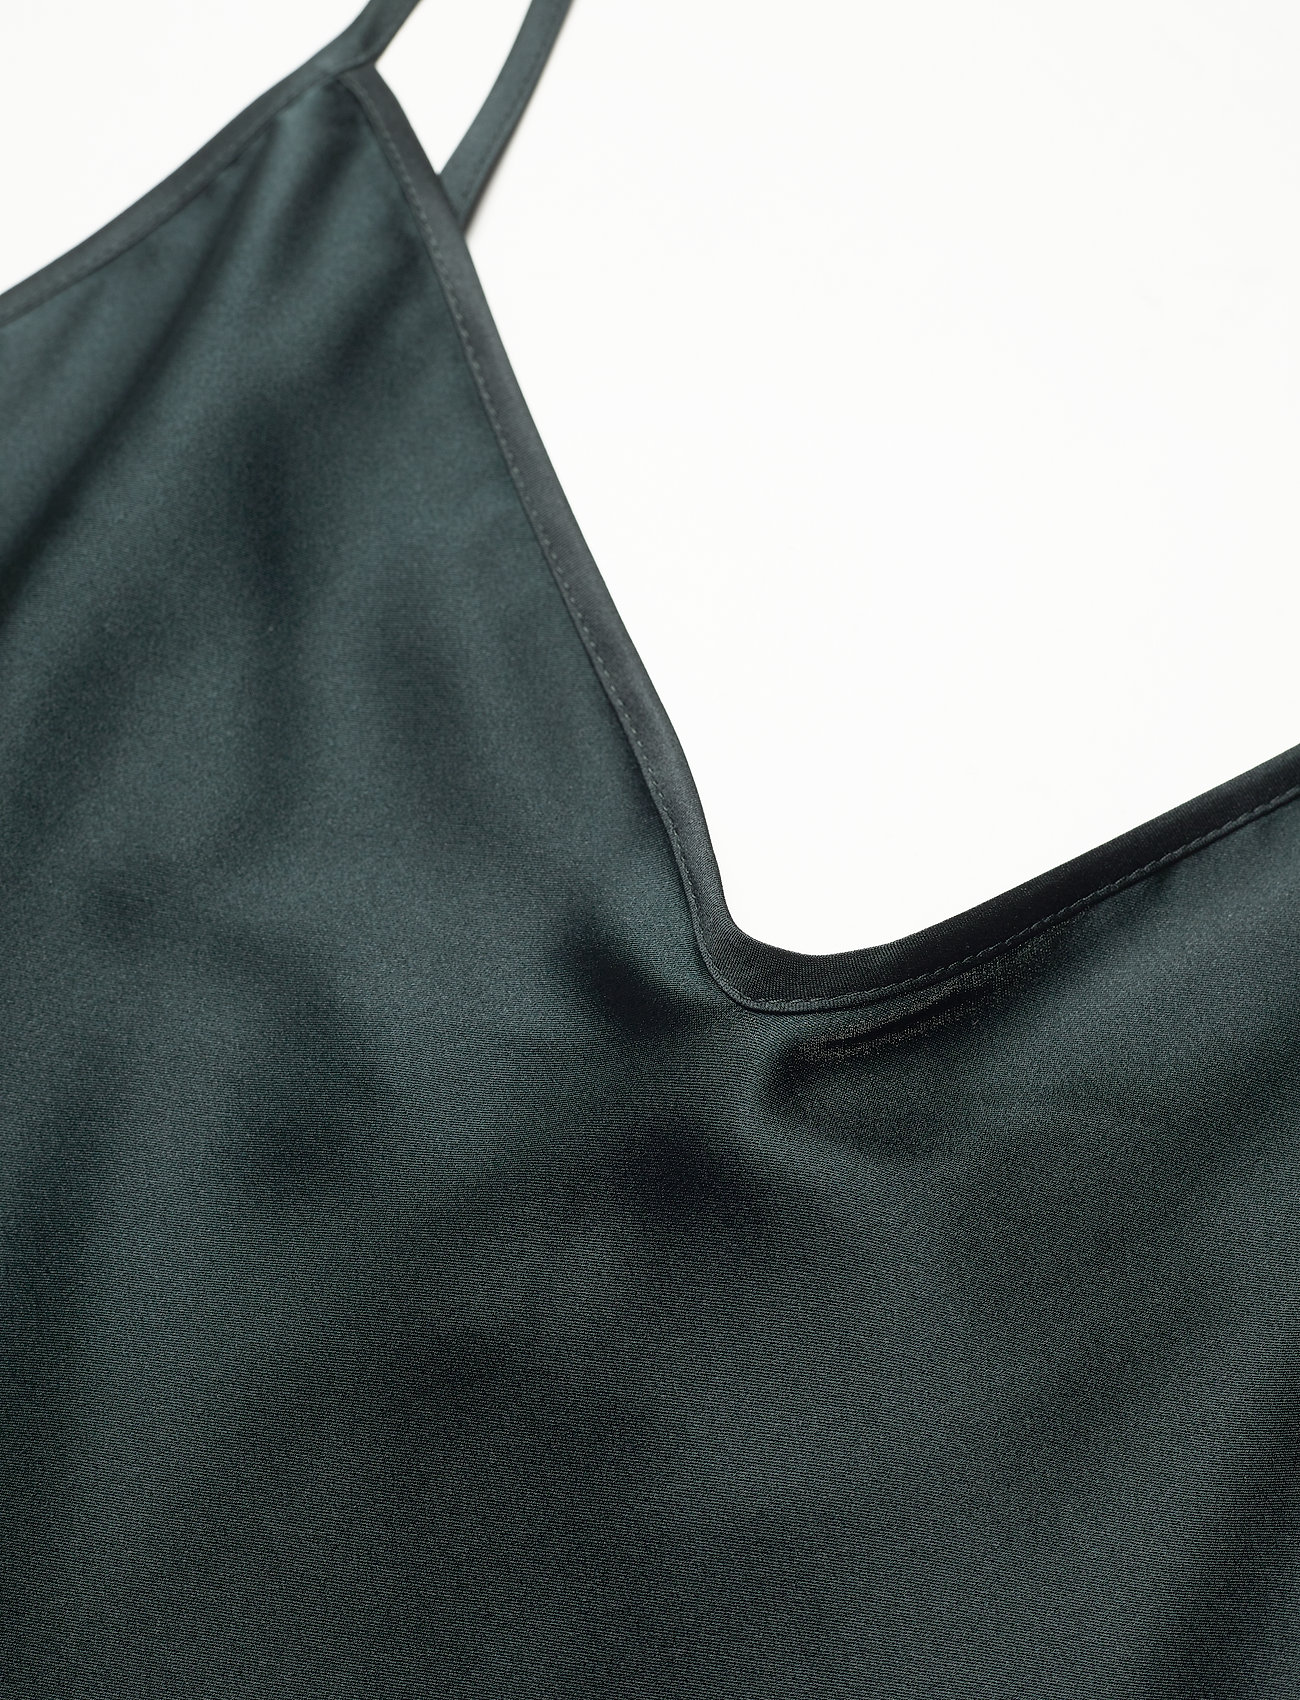 Max Mara Leisure - LUCCA - Ärmellose tops - dark green - 2